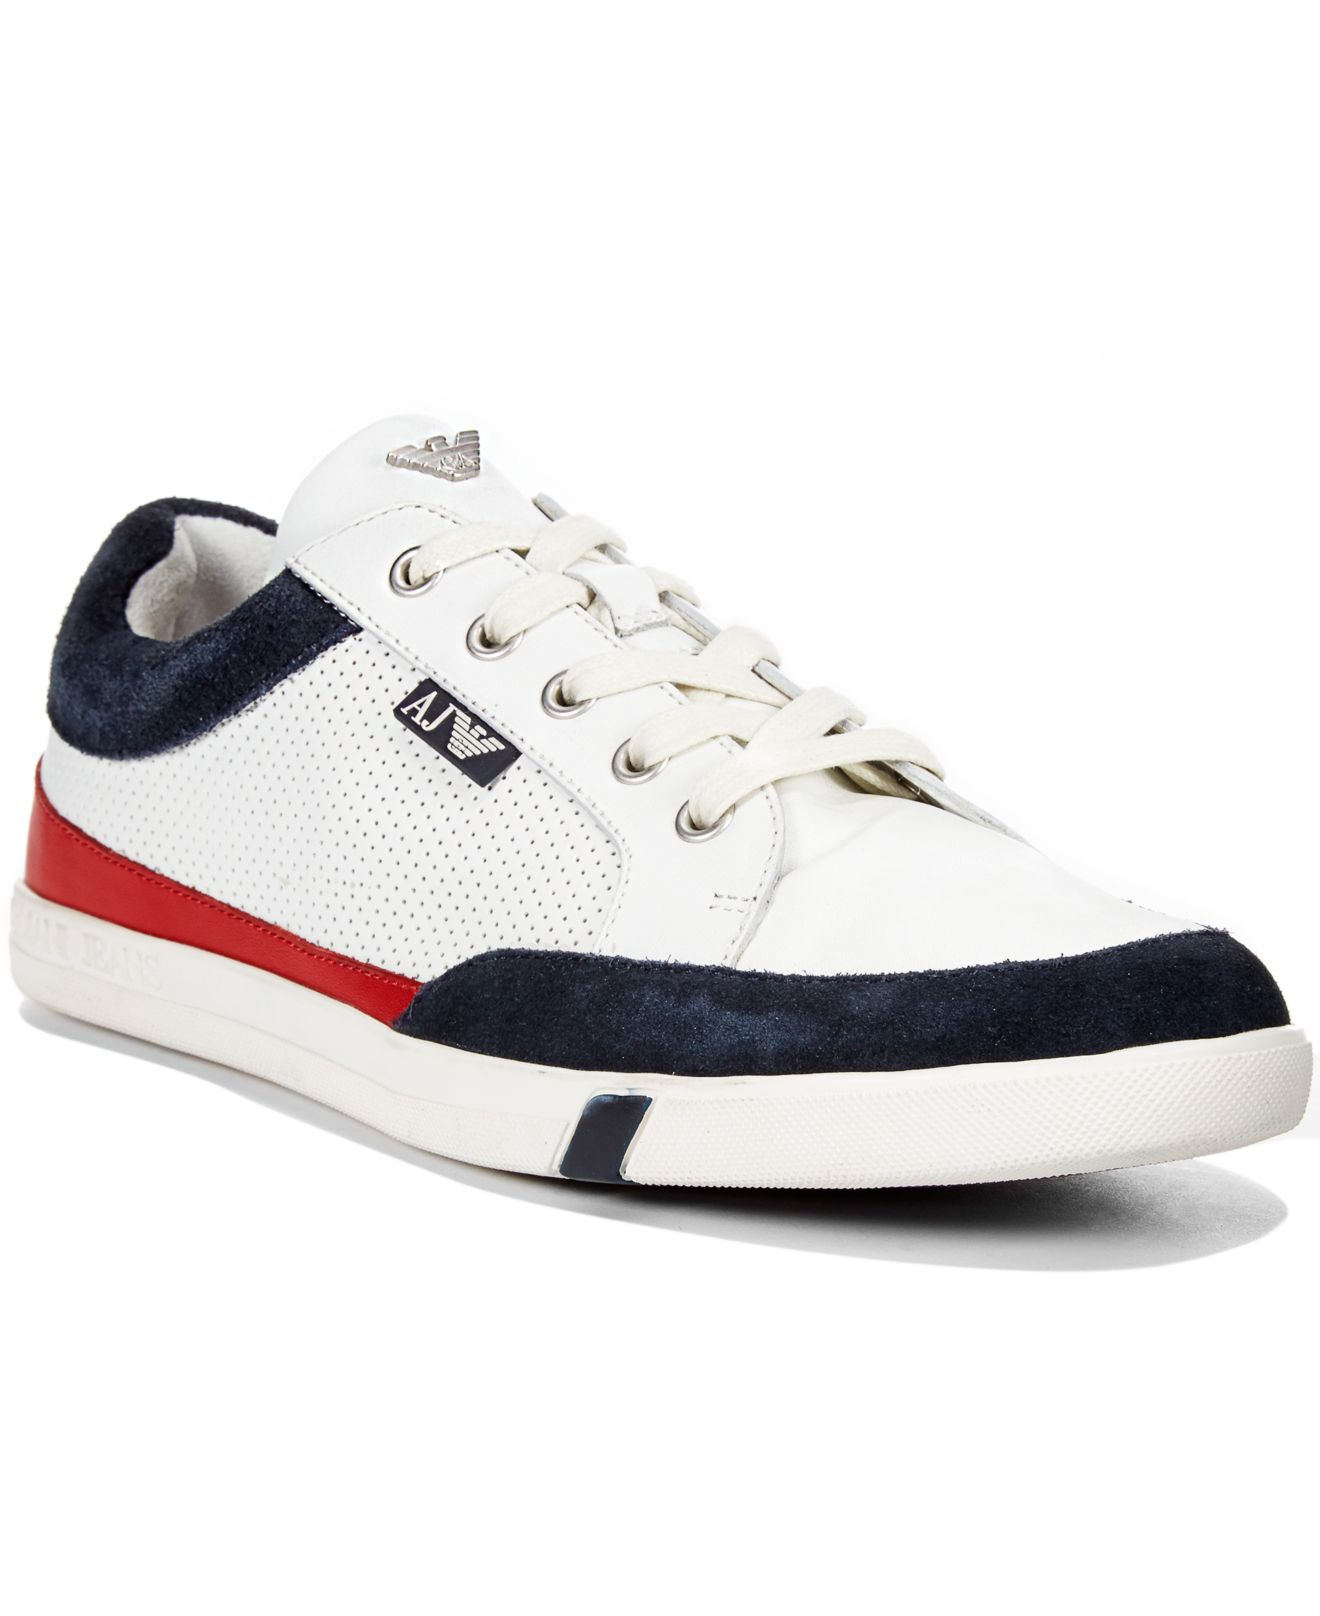 Rubber Rings For Men >> Lyst - Armani Jeans Low Top Perforated Leather Sneakers in White for Men